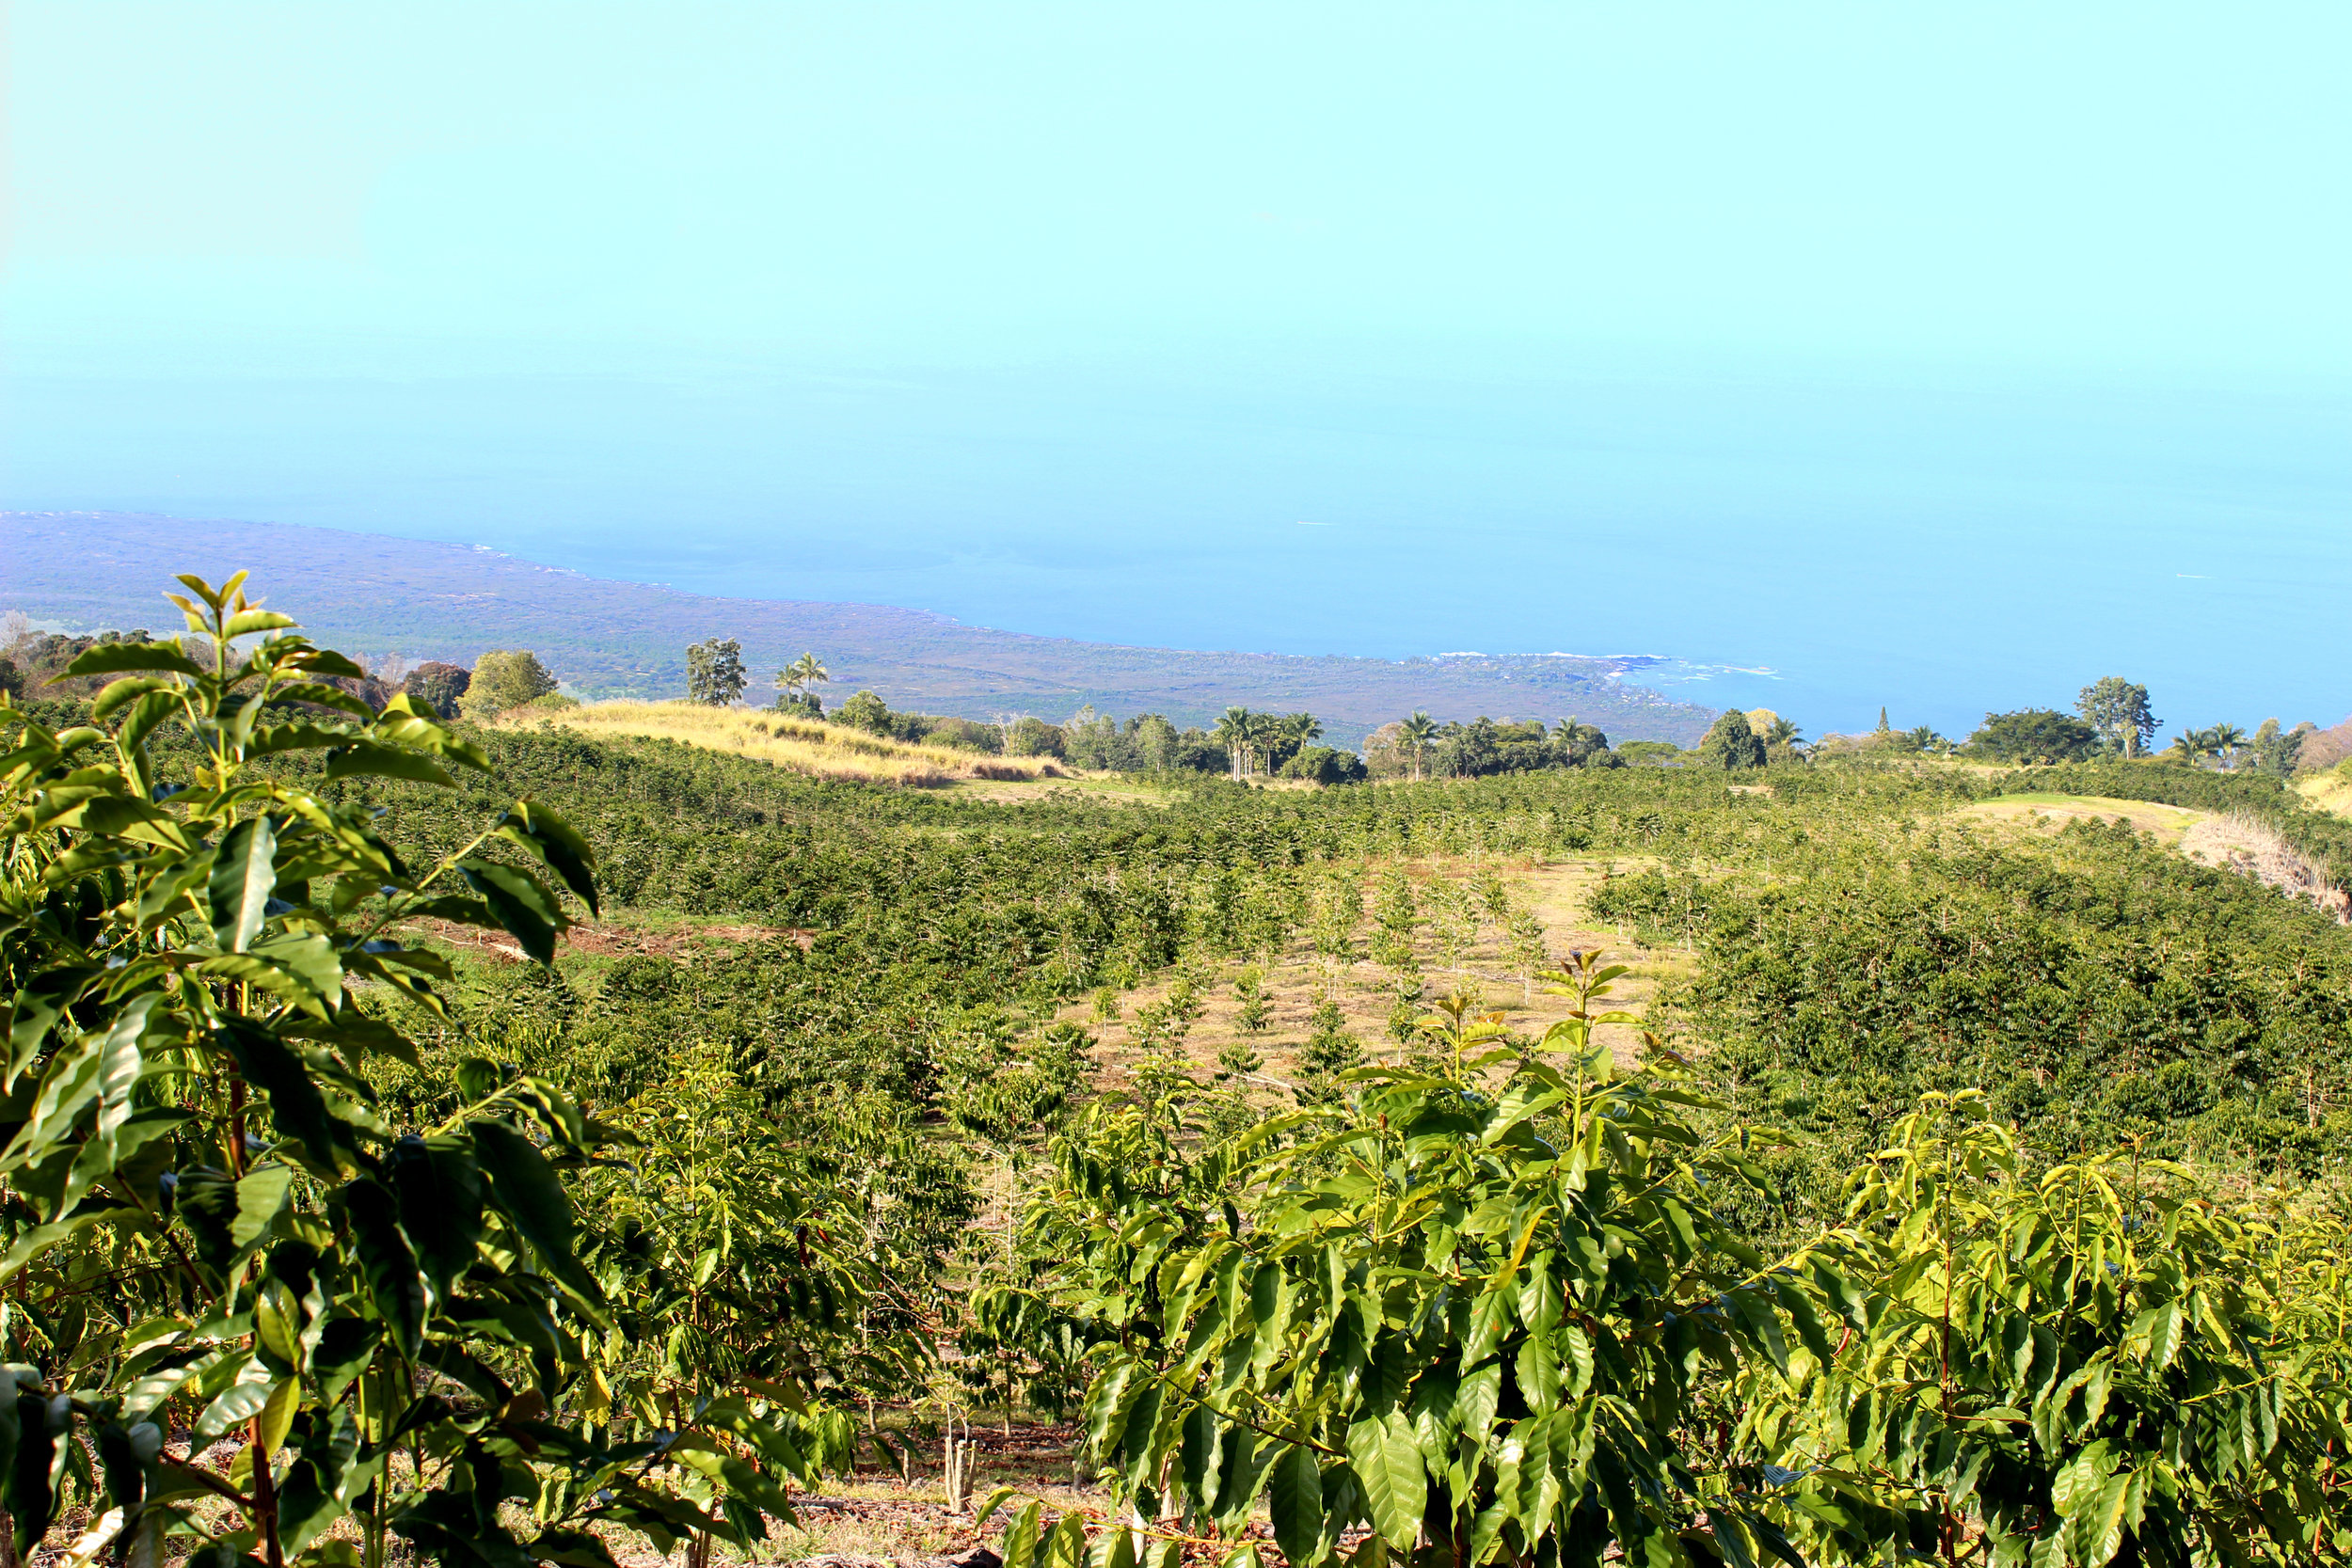 Honolulu Coffee Company farm